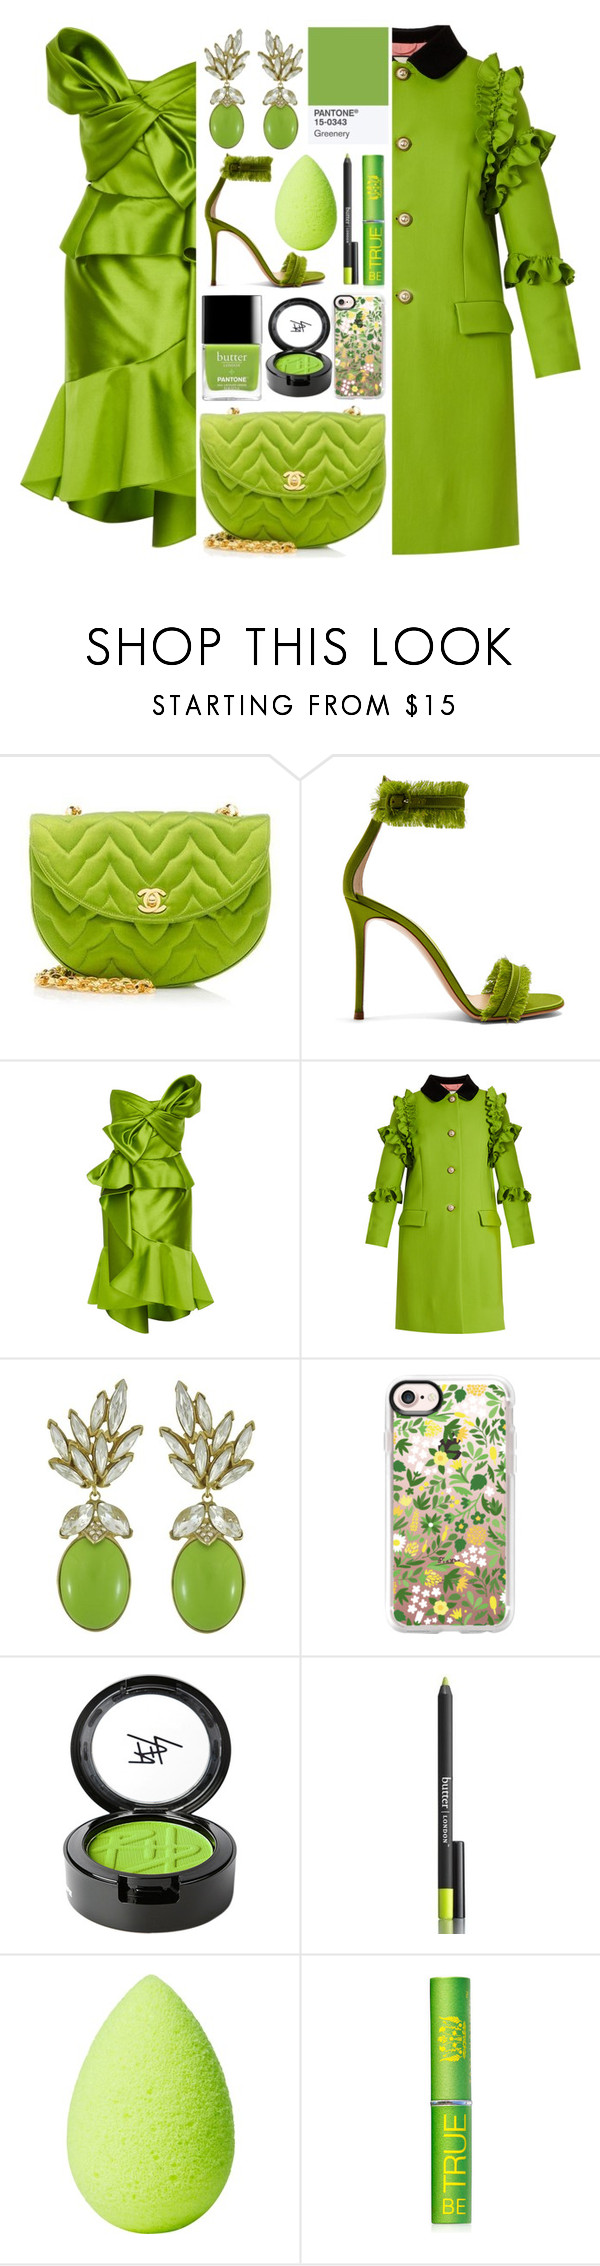 """Lux O' The Irish"" by rachael-aislynn ❤ liked on Polyvore featuring Chanel, Gianvito Rossi, Marchesa, Gucci, Ciner, Casetify, Beauty Is Life, Butter London, beautyblender and Tata Harper"